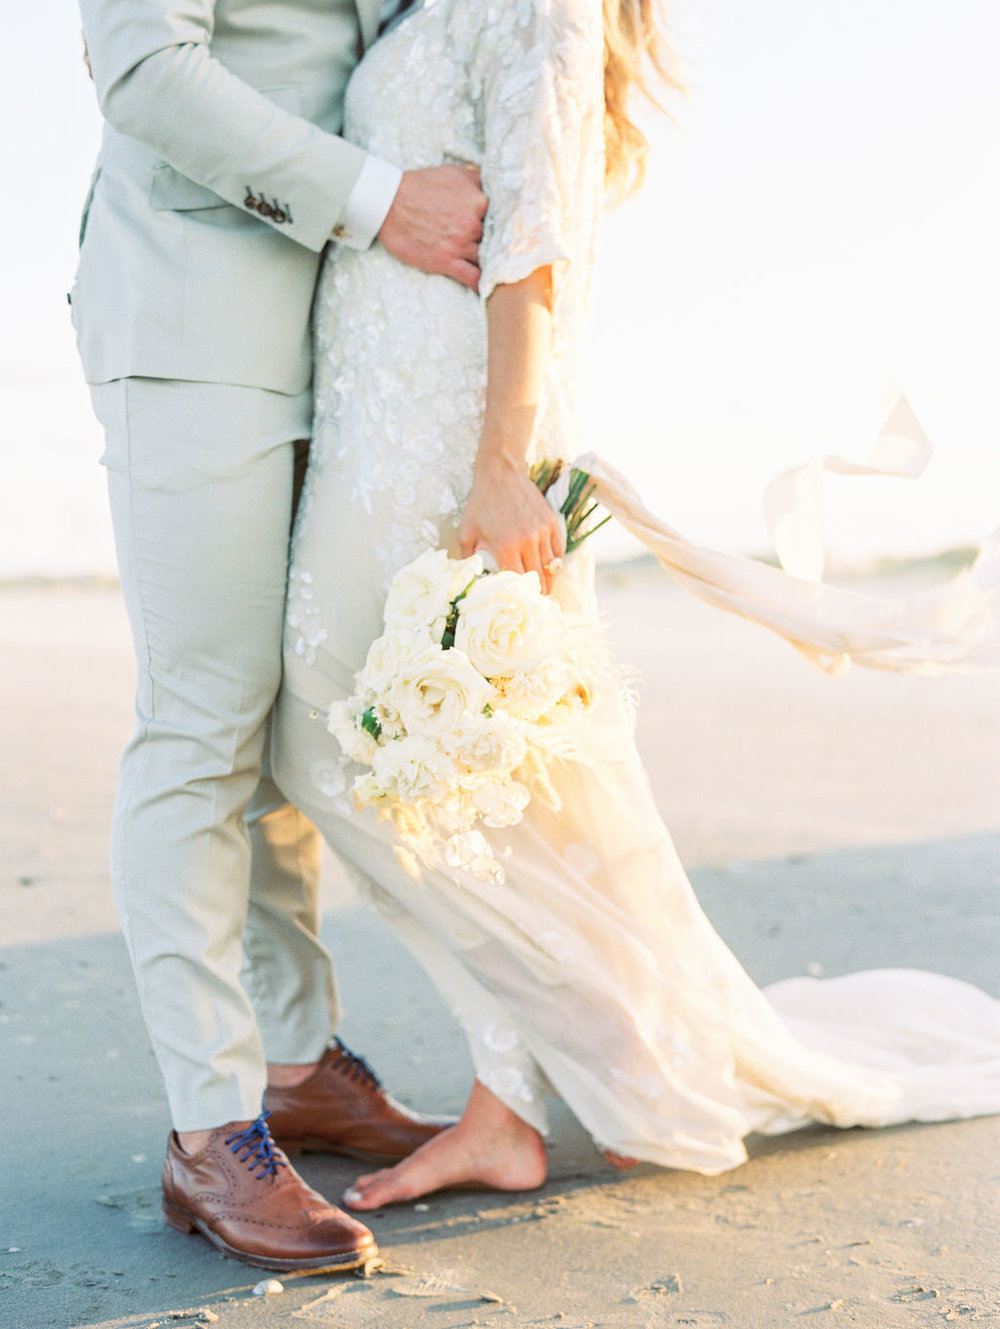 Romance on The Coast | Cumberland Island - Coastal wedding inspiration on the untouched and pristine Cumberland Island, GeorgiaPublished in Coastal Bride